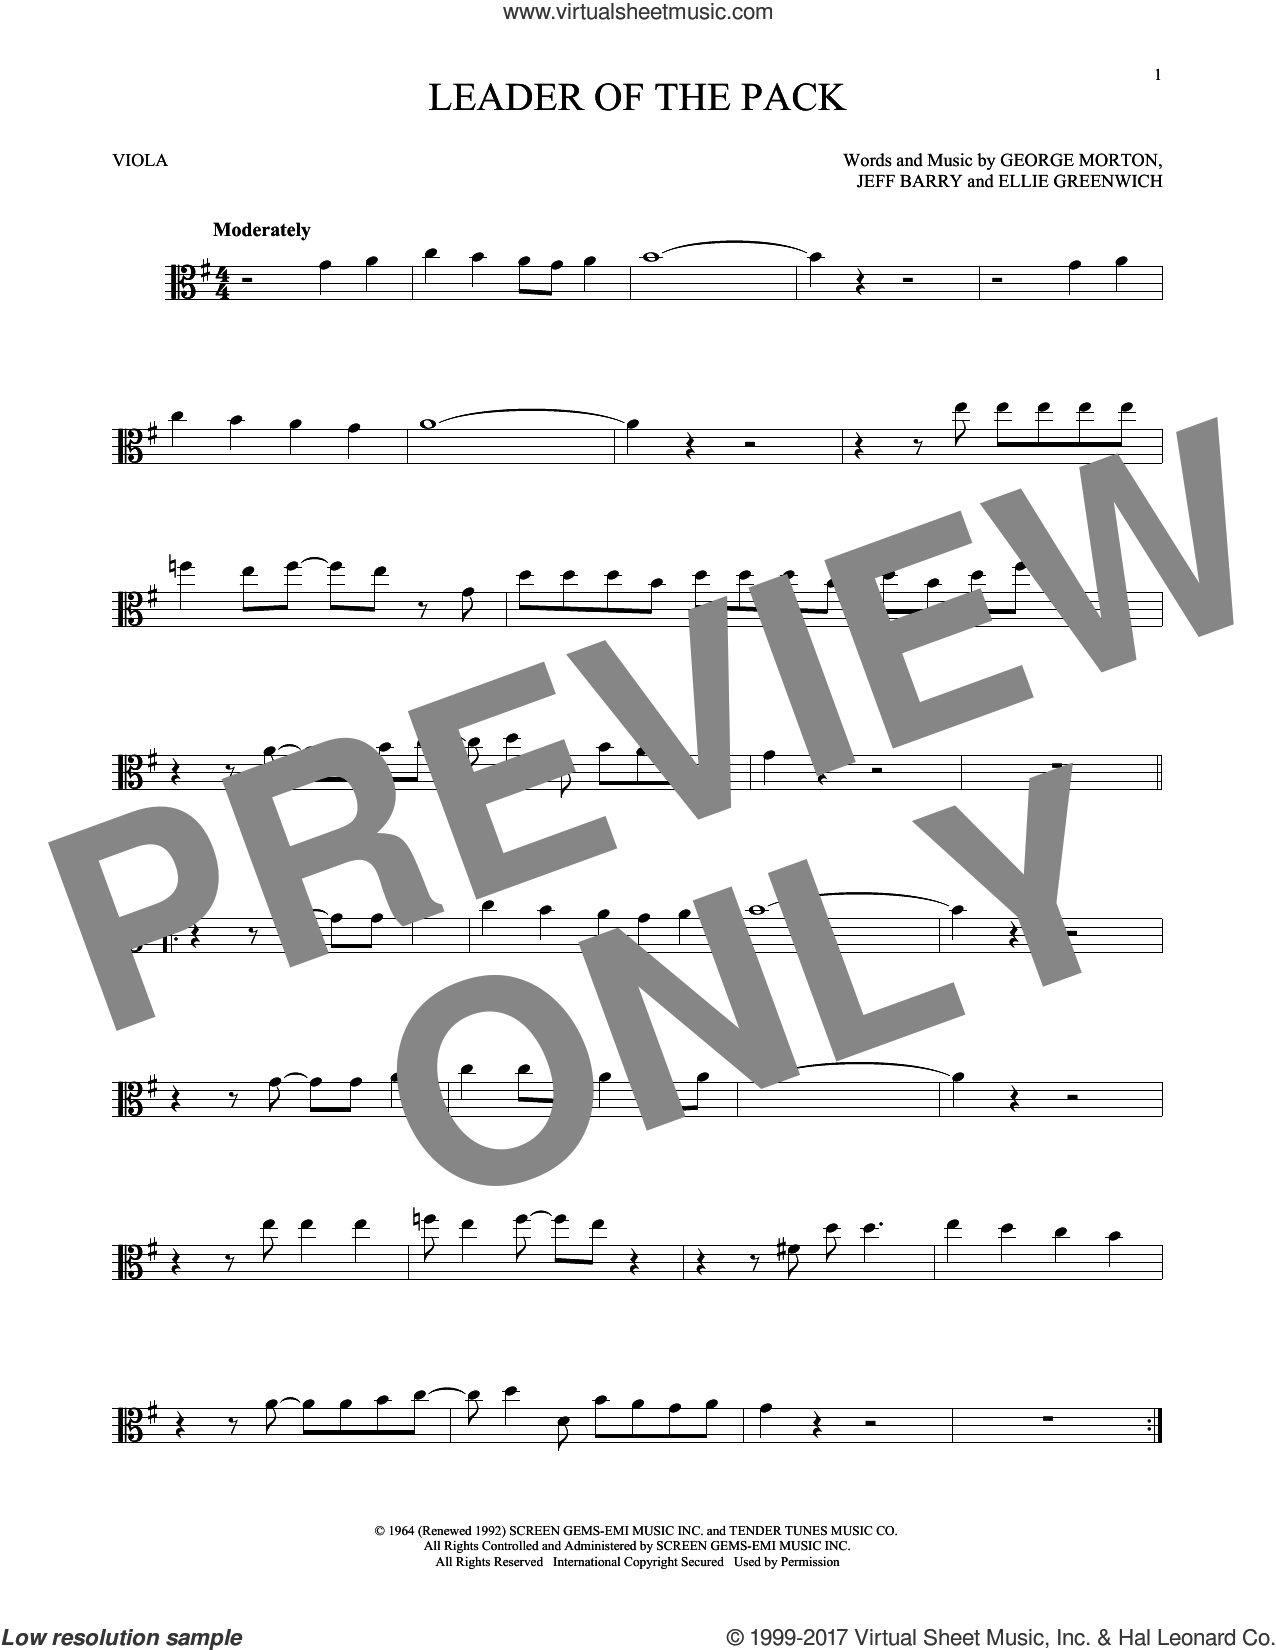 Leader Of The Pack sheet music for viola solo by The Shangri-Las, Ellie Greenwich, George Morton and Jeff Barry, intermediate. Score Image Preview.